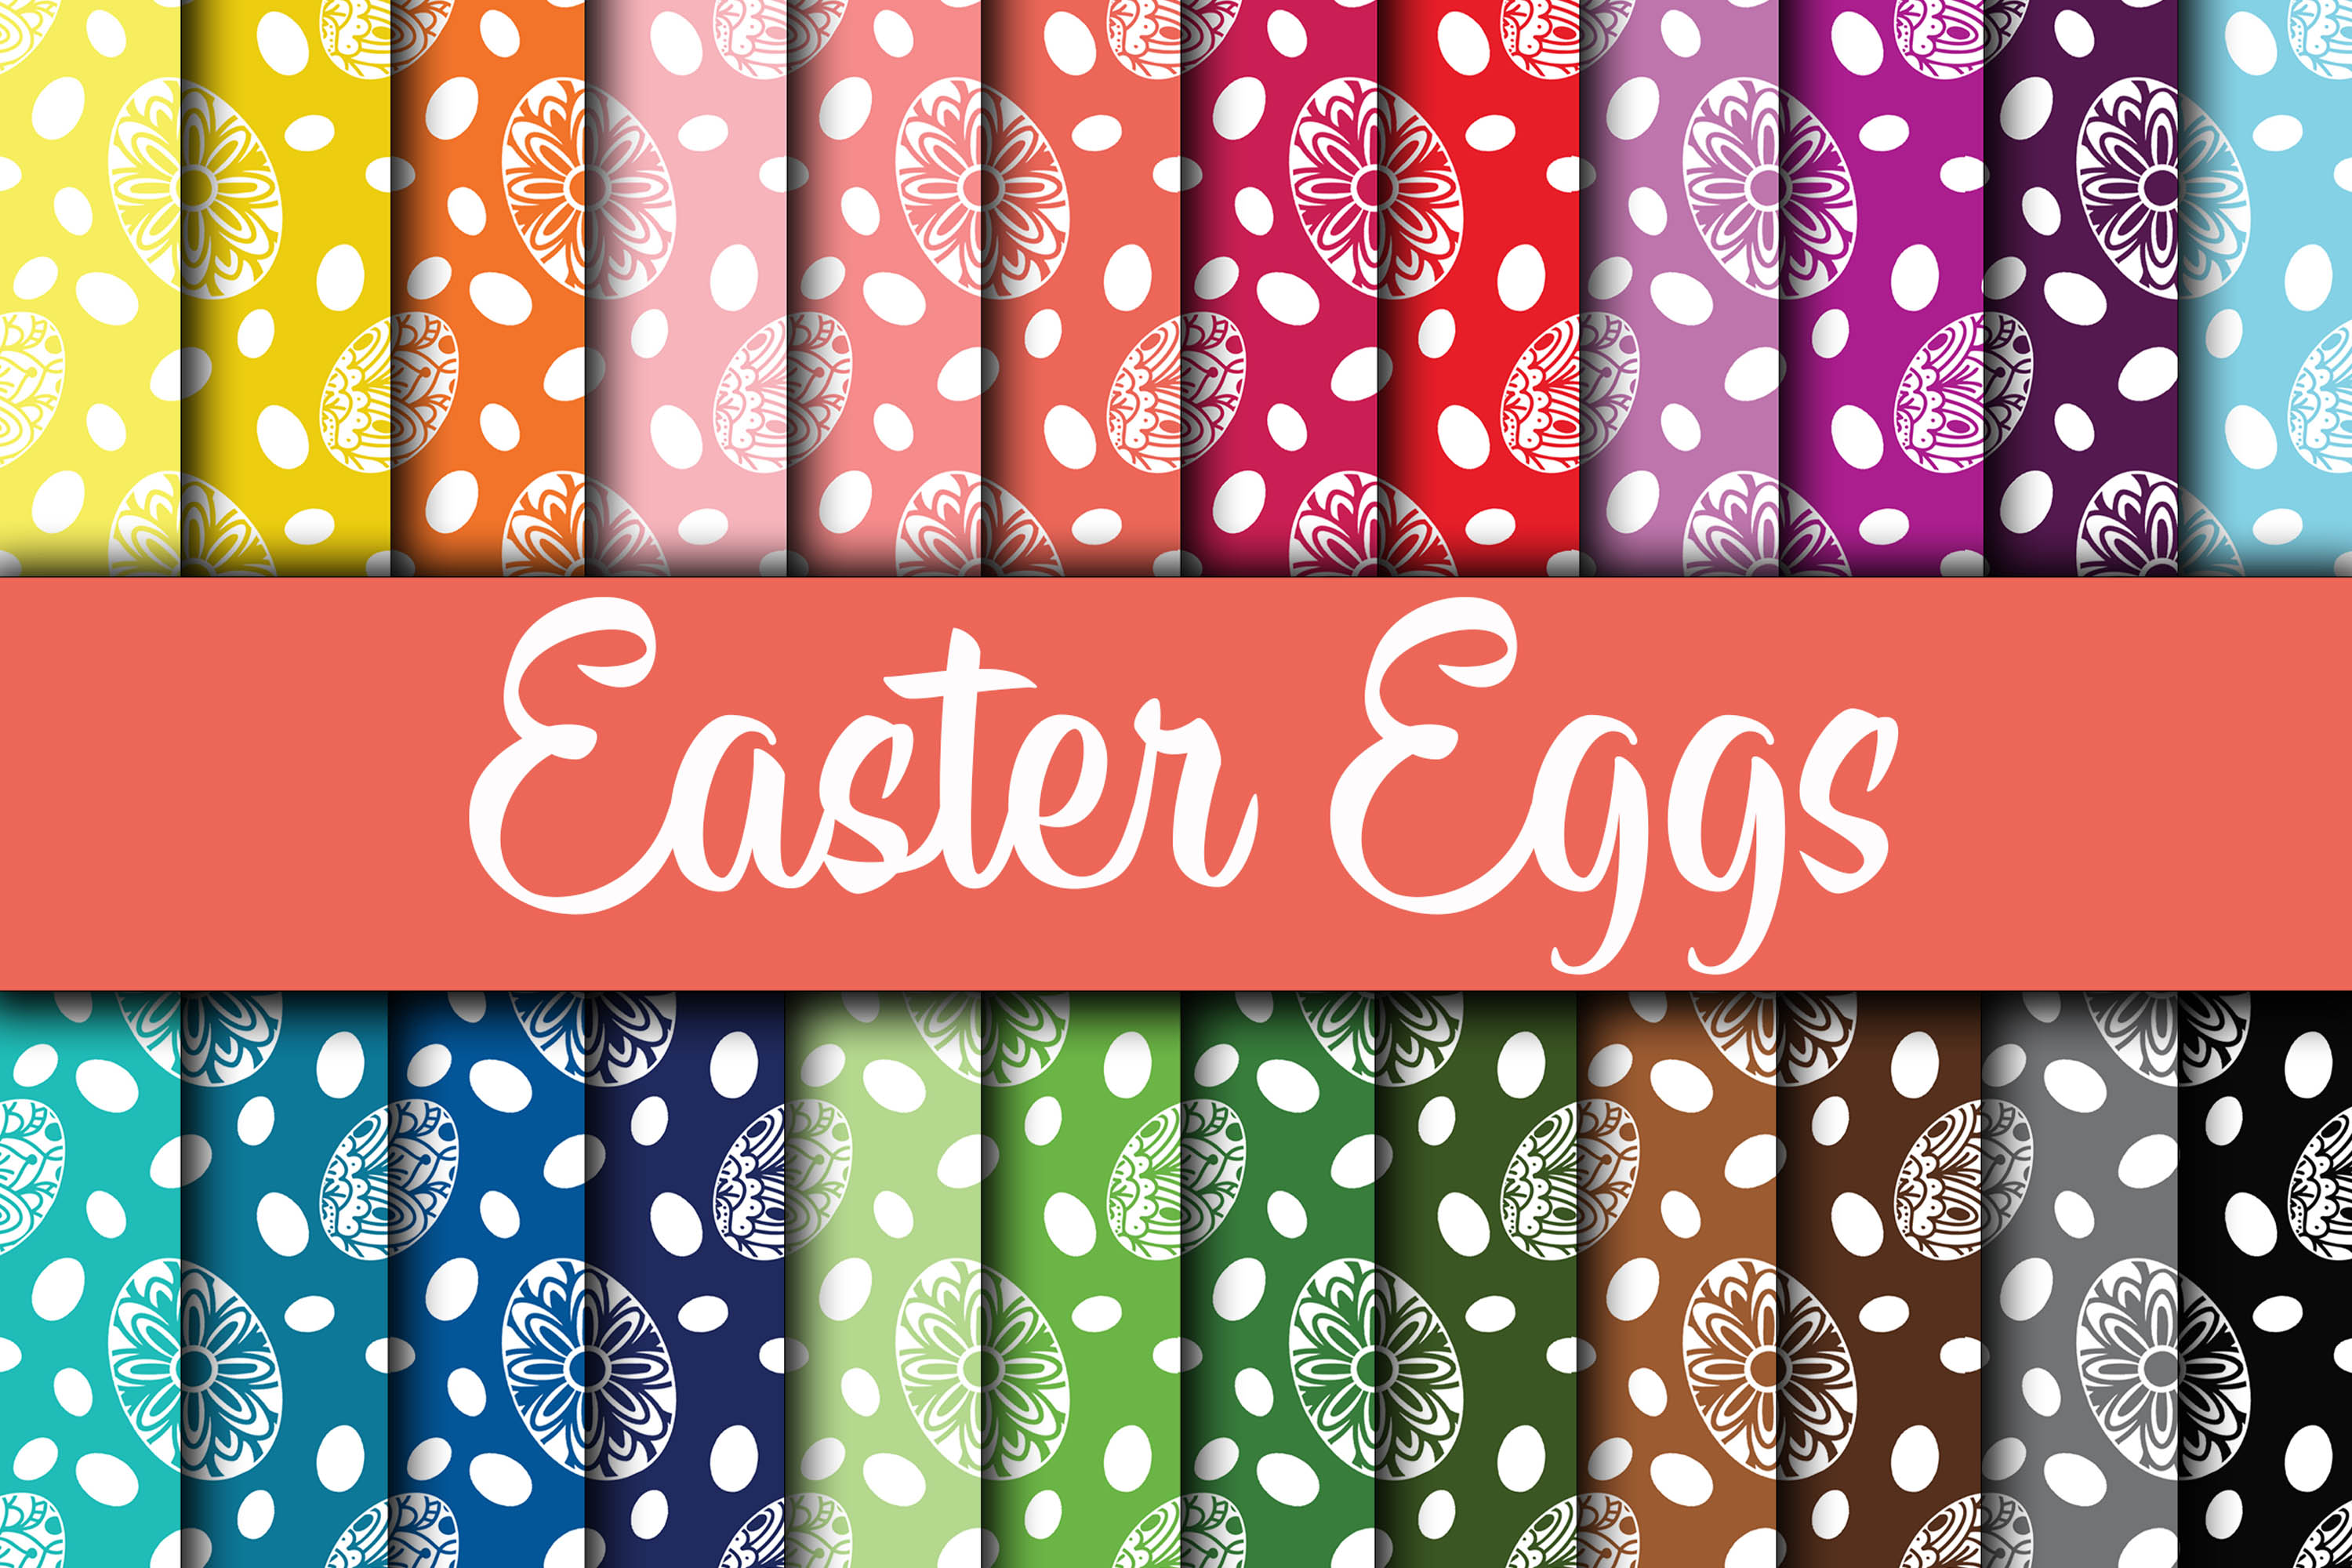 Download Free Easter Eggs Digital Paper Designs Graphic By Oldmarketdesigns for Cricut Explore, Silhouette and other cutting machines.